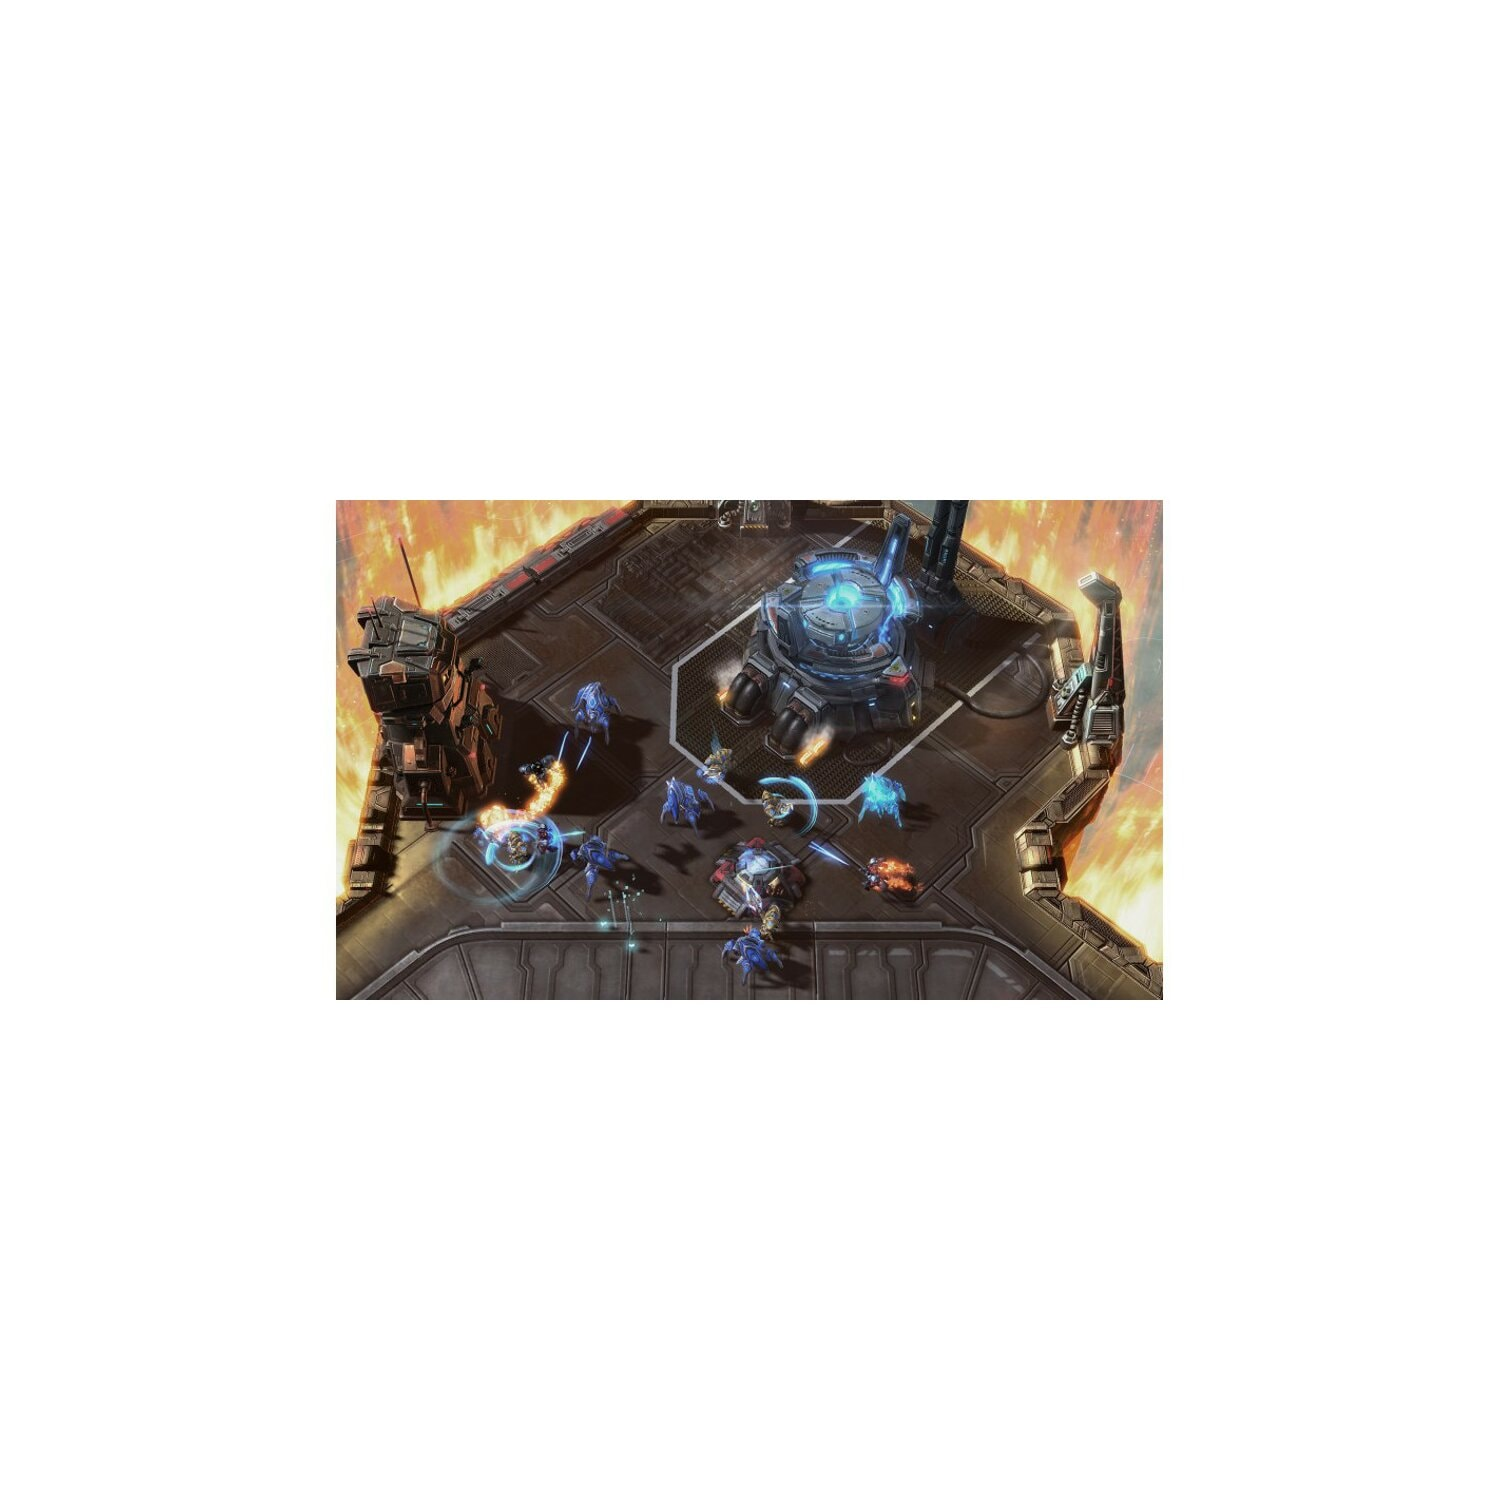 Gra PC StarCraft II: Legacy of the Void